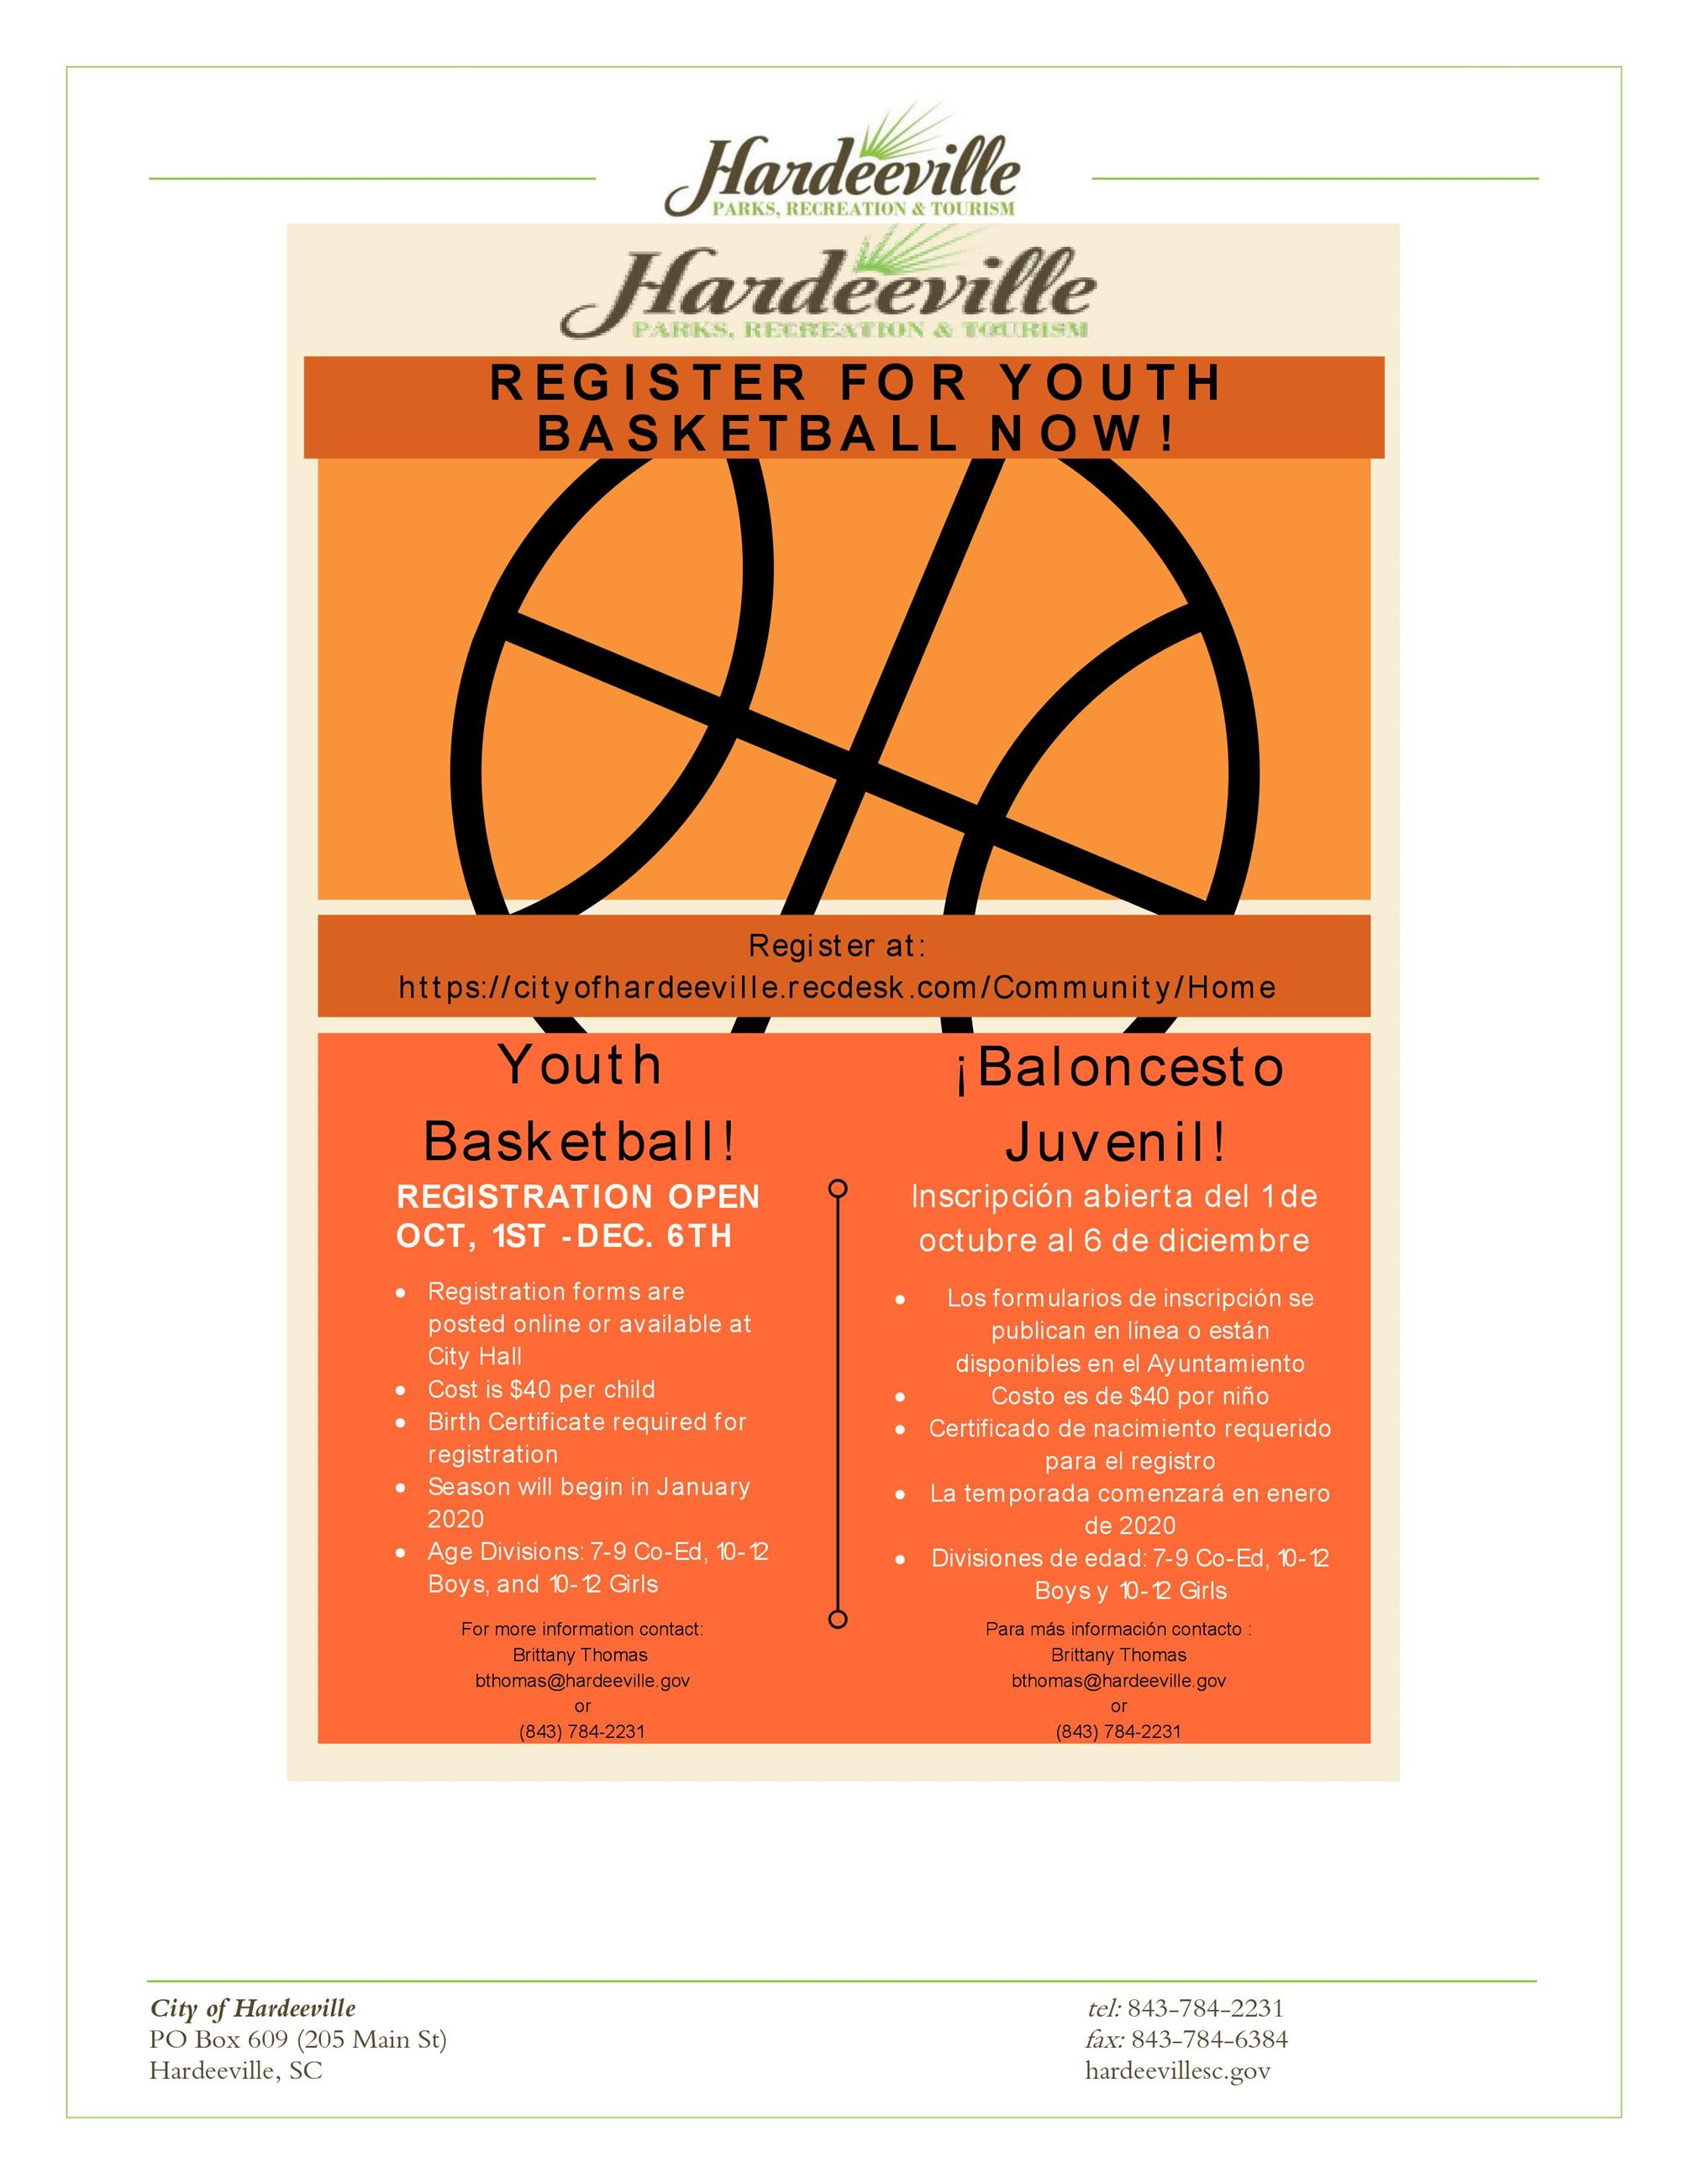 Youth Basketball PSA 2